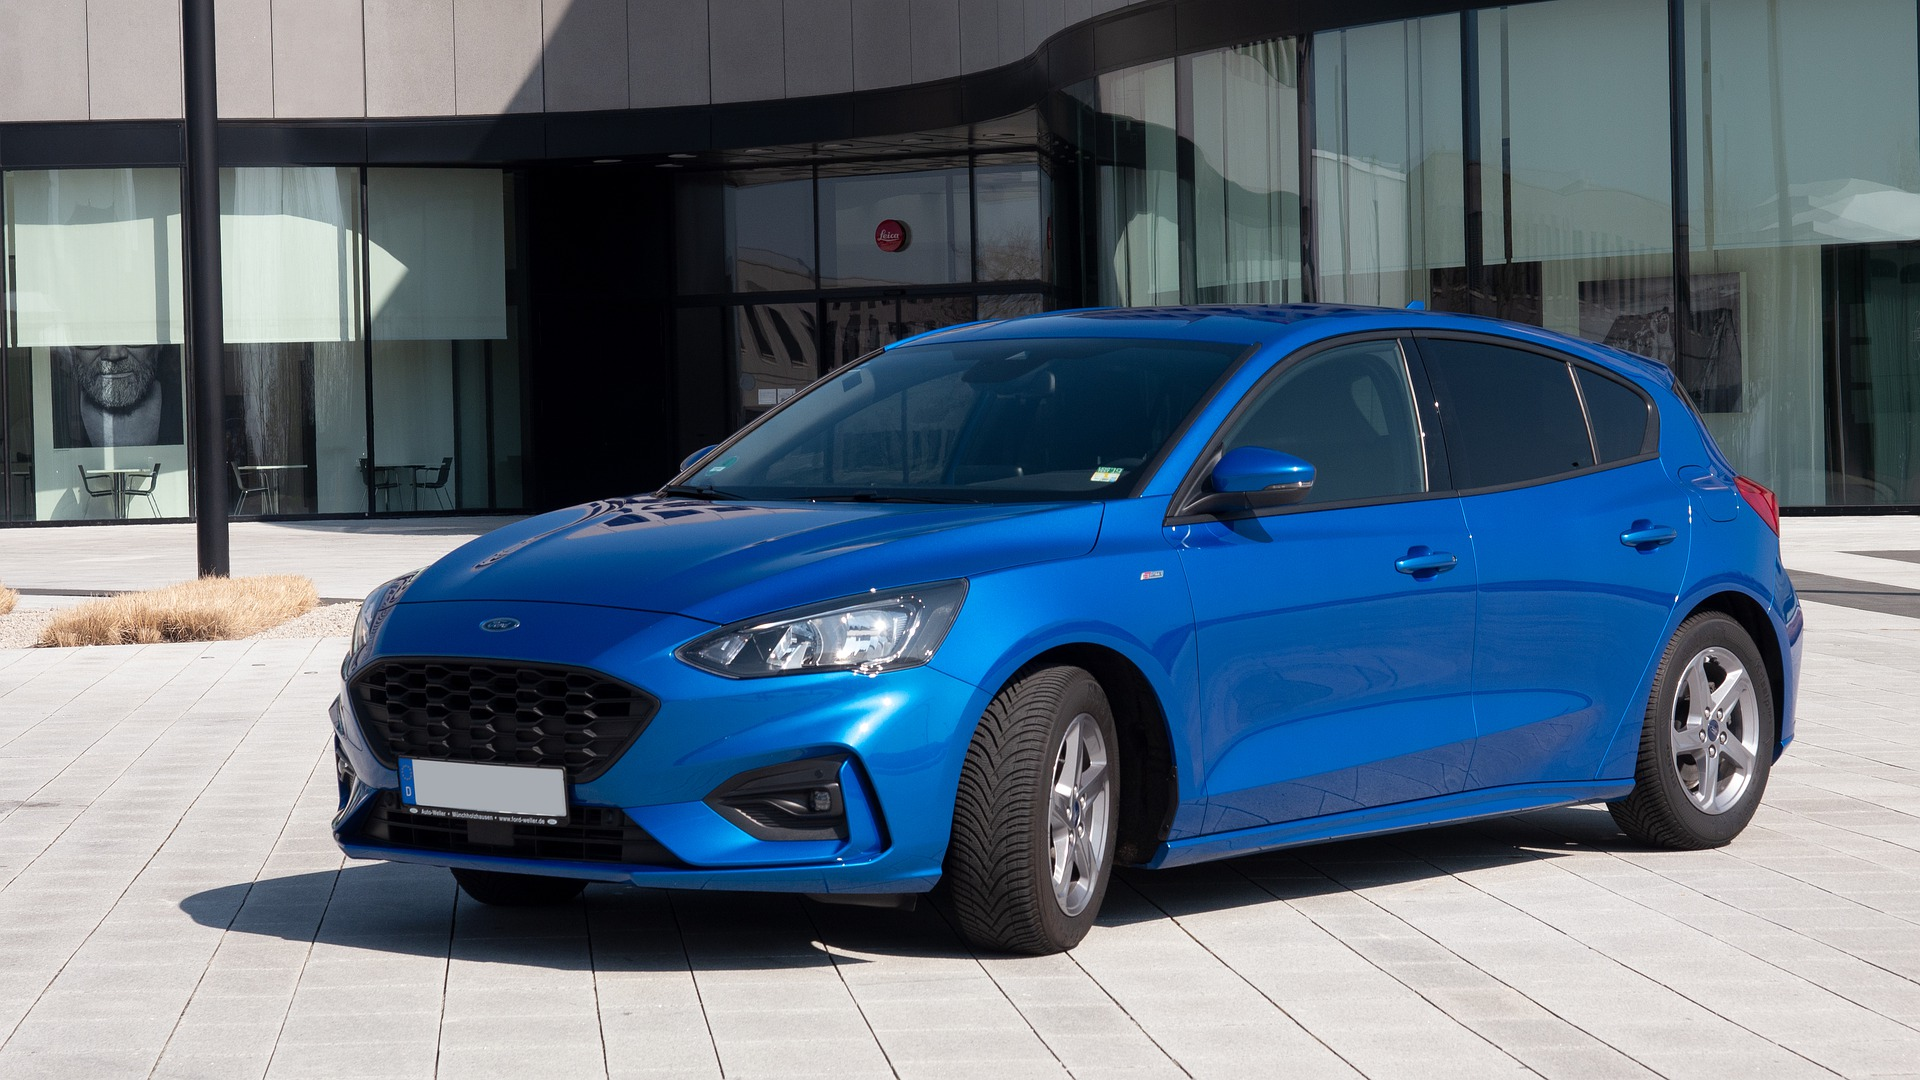 Blue Ford Focus parked outside building